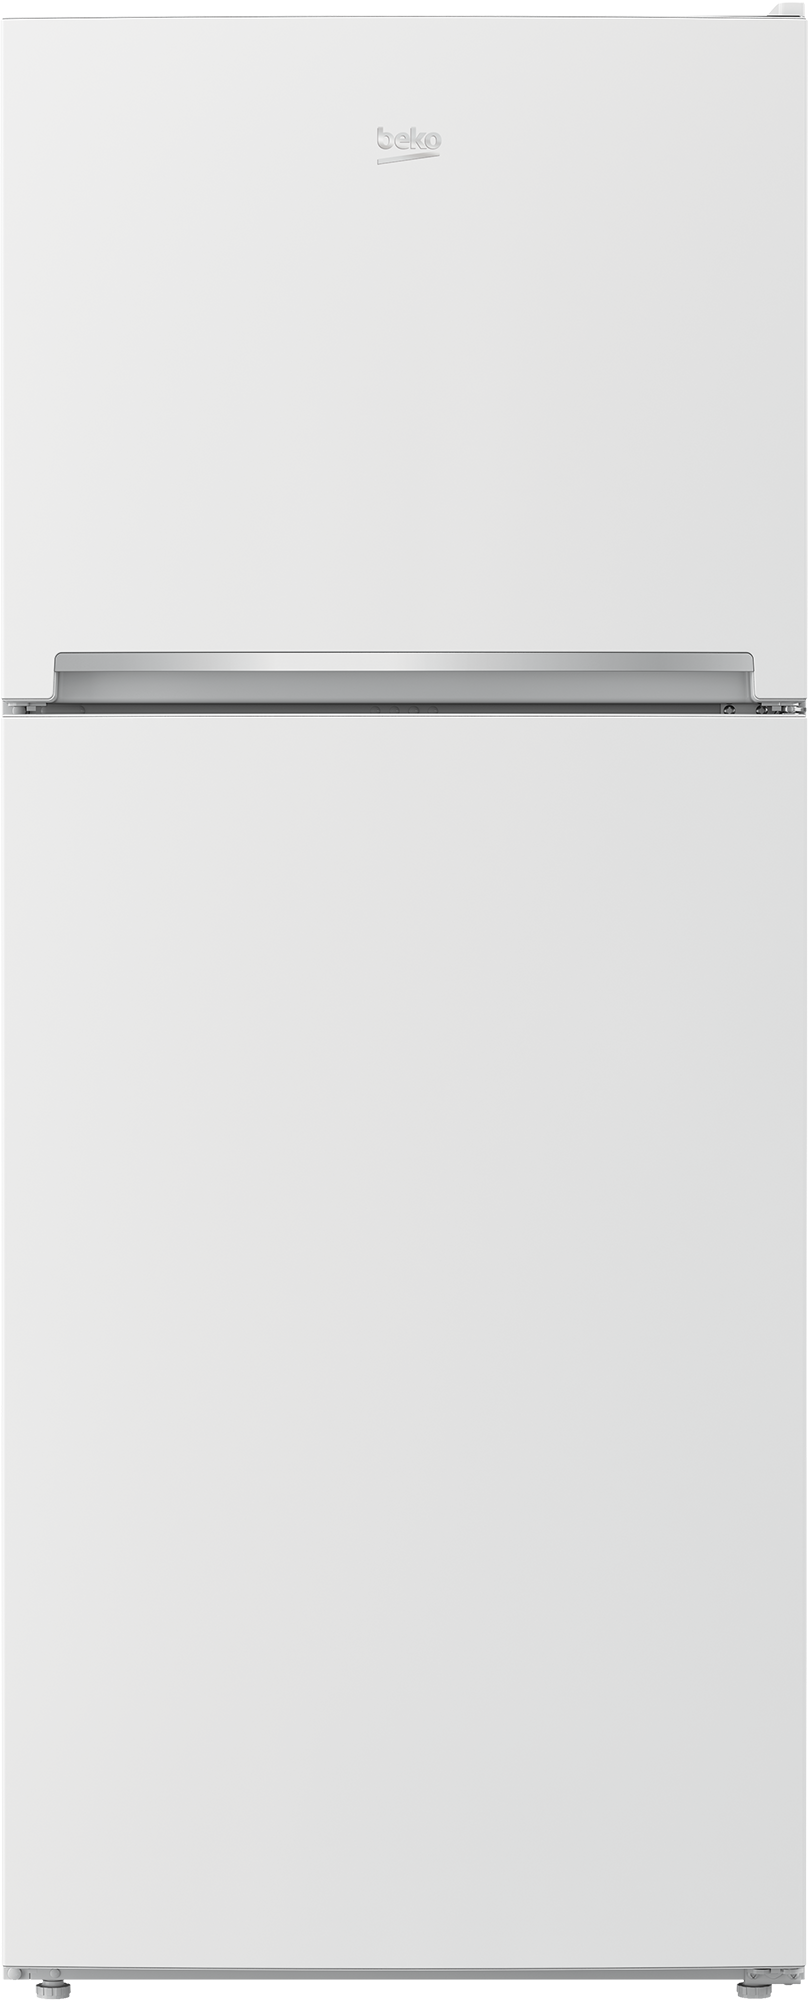 28 Freezer Top White Refrigerator With Auto Ice Maker Bftf2716whim Beko